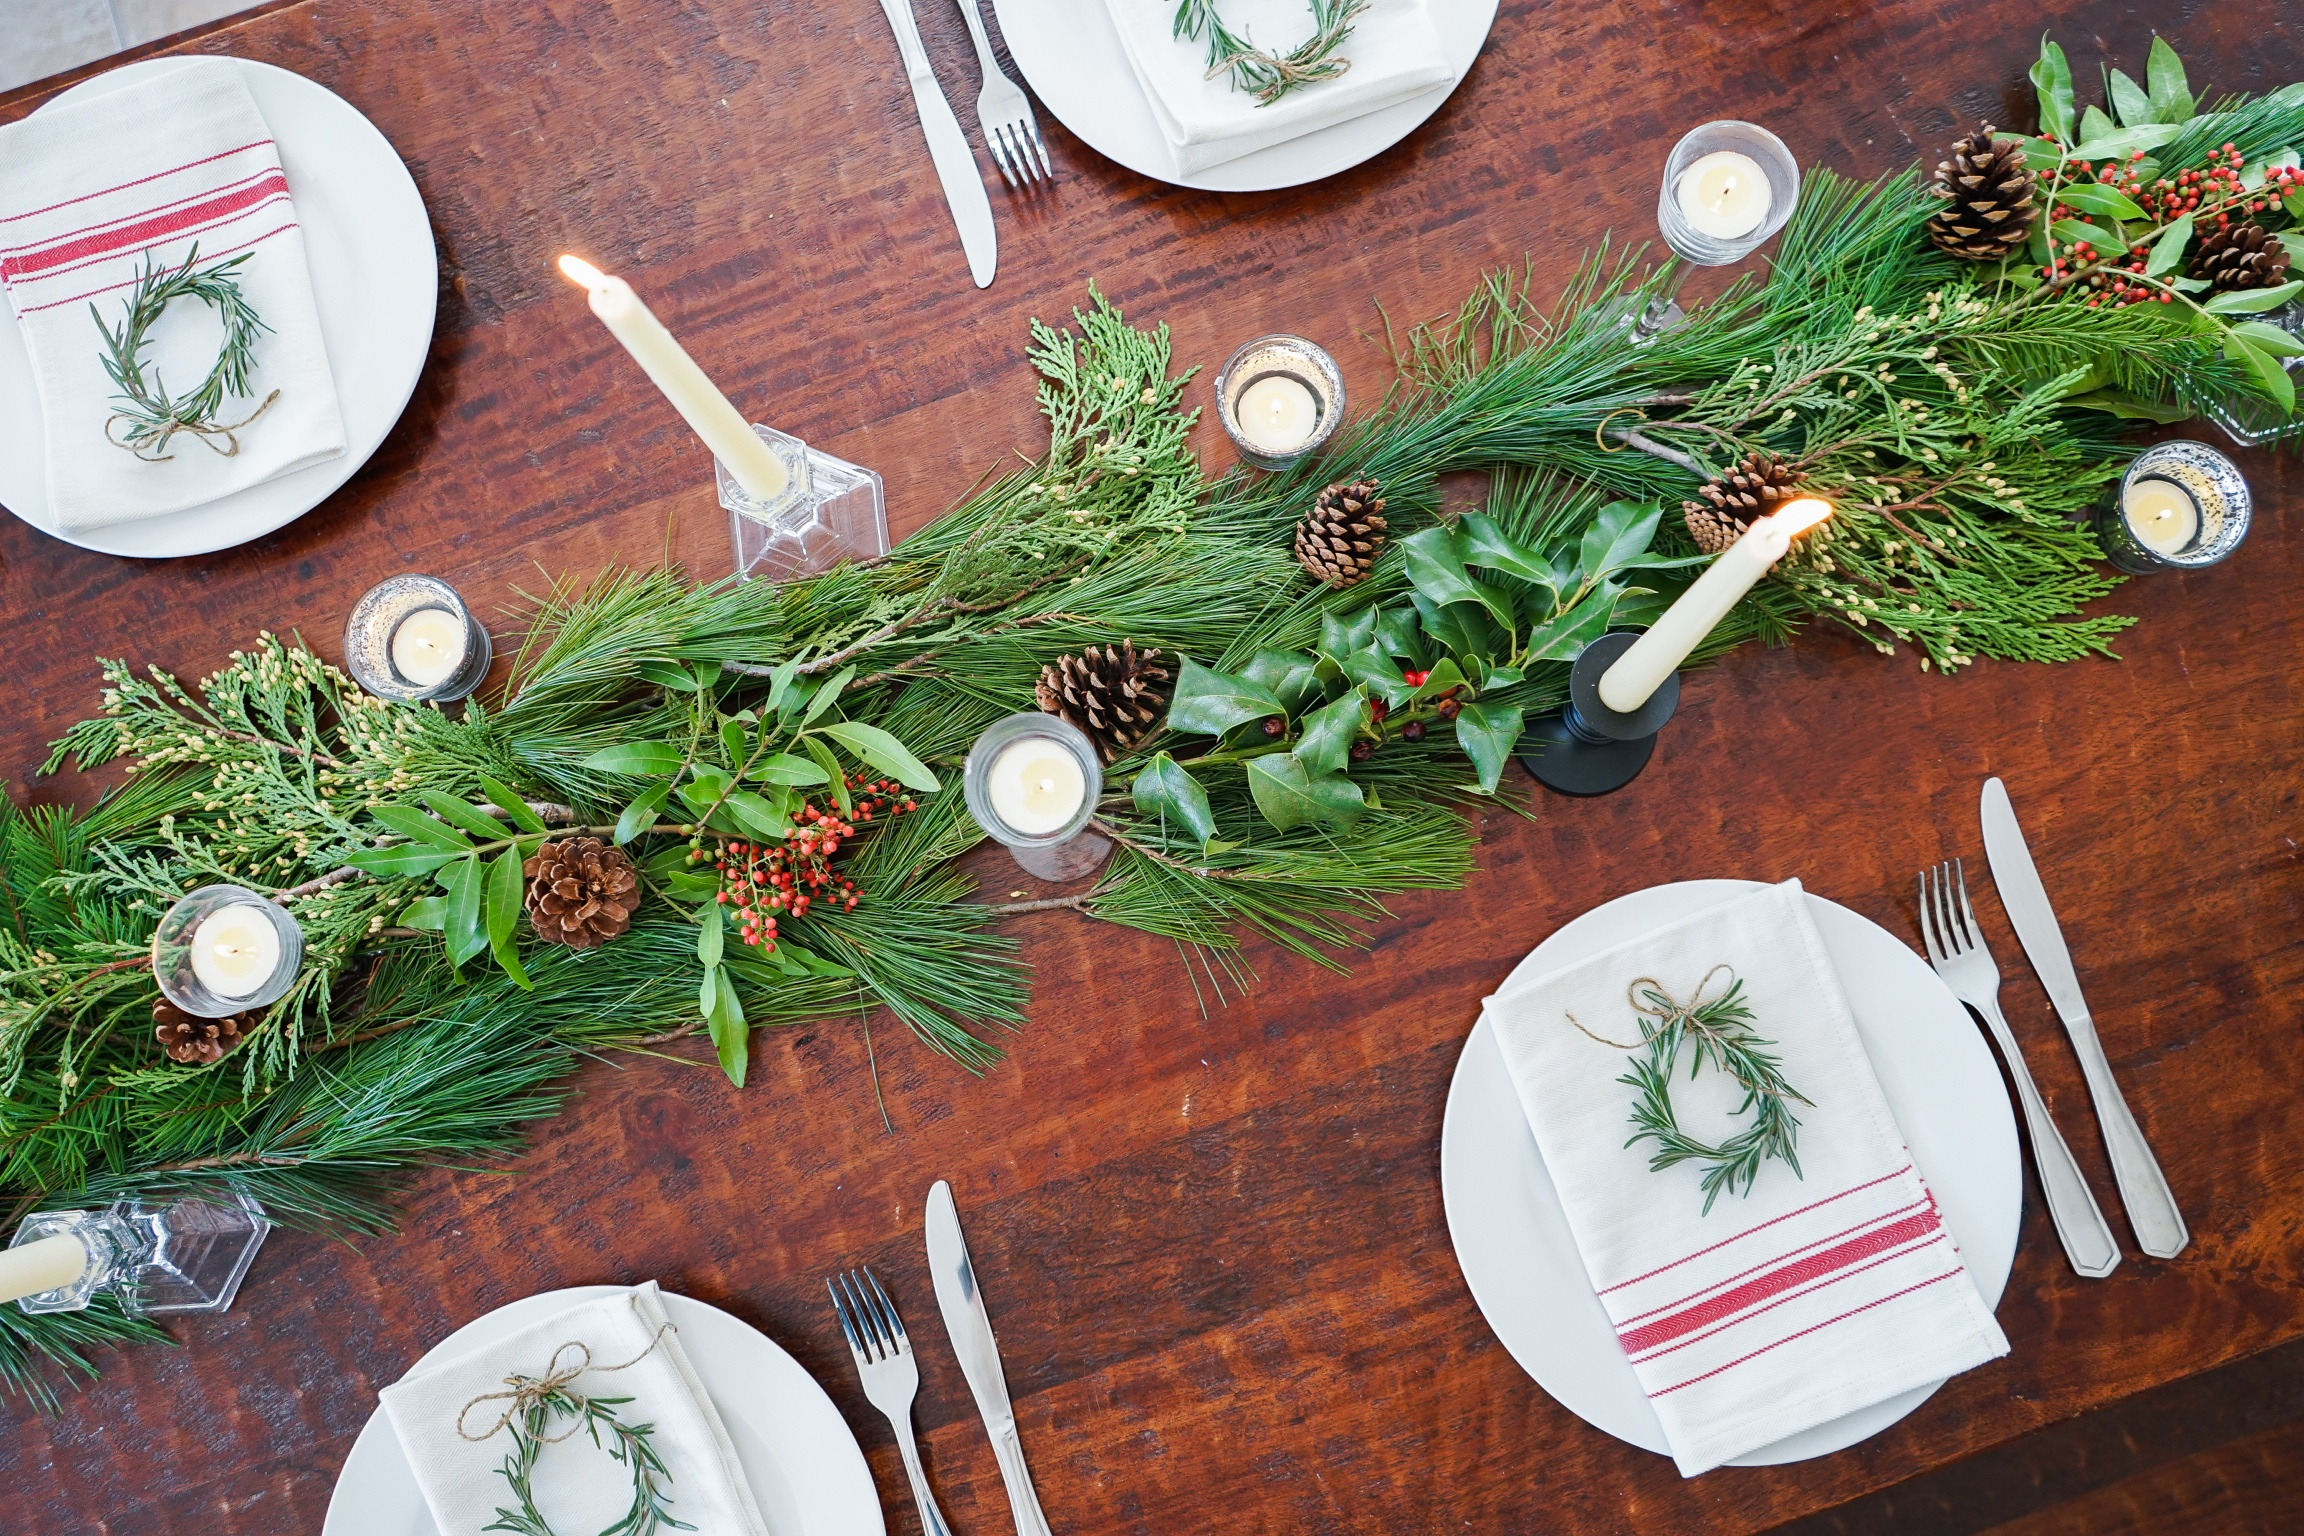 Festive holiday table setting for our Yuletide Brunch!